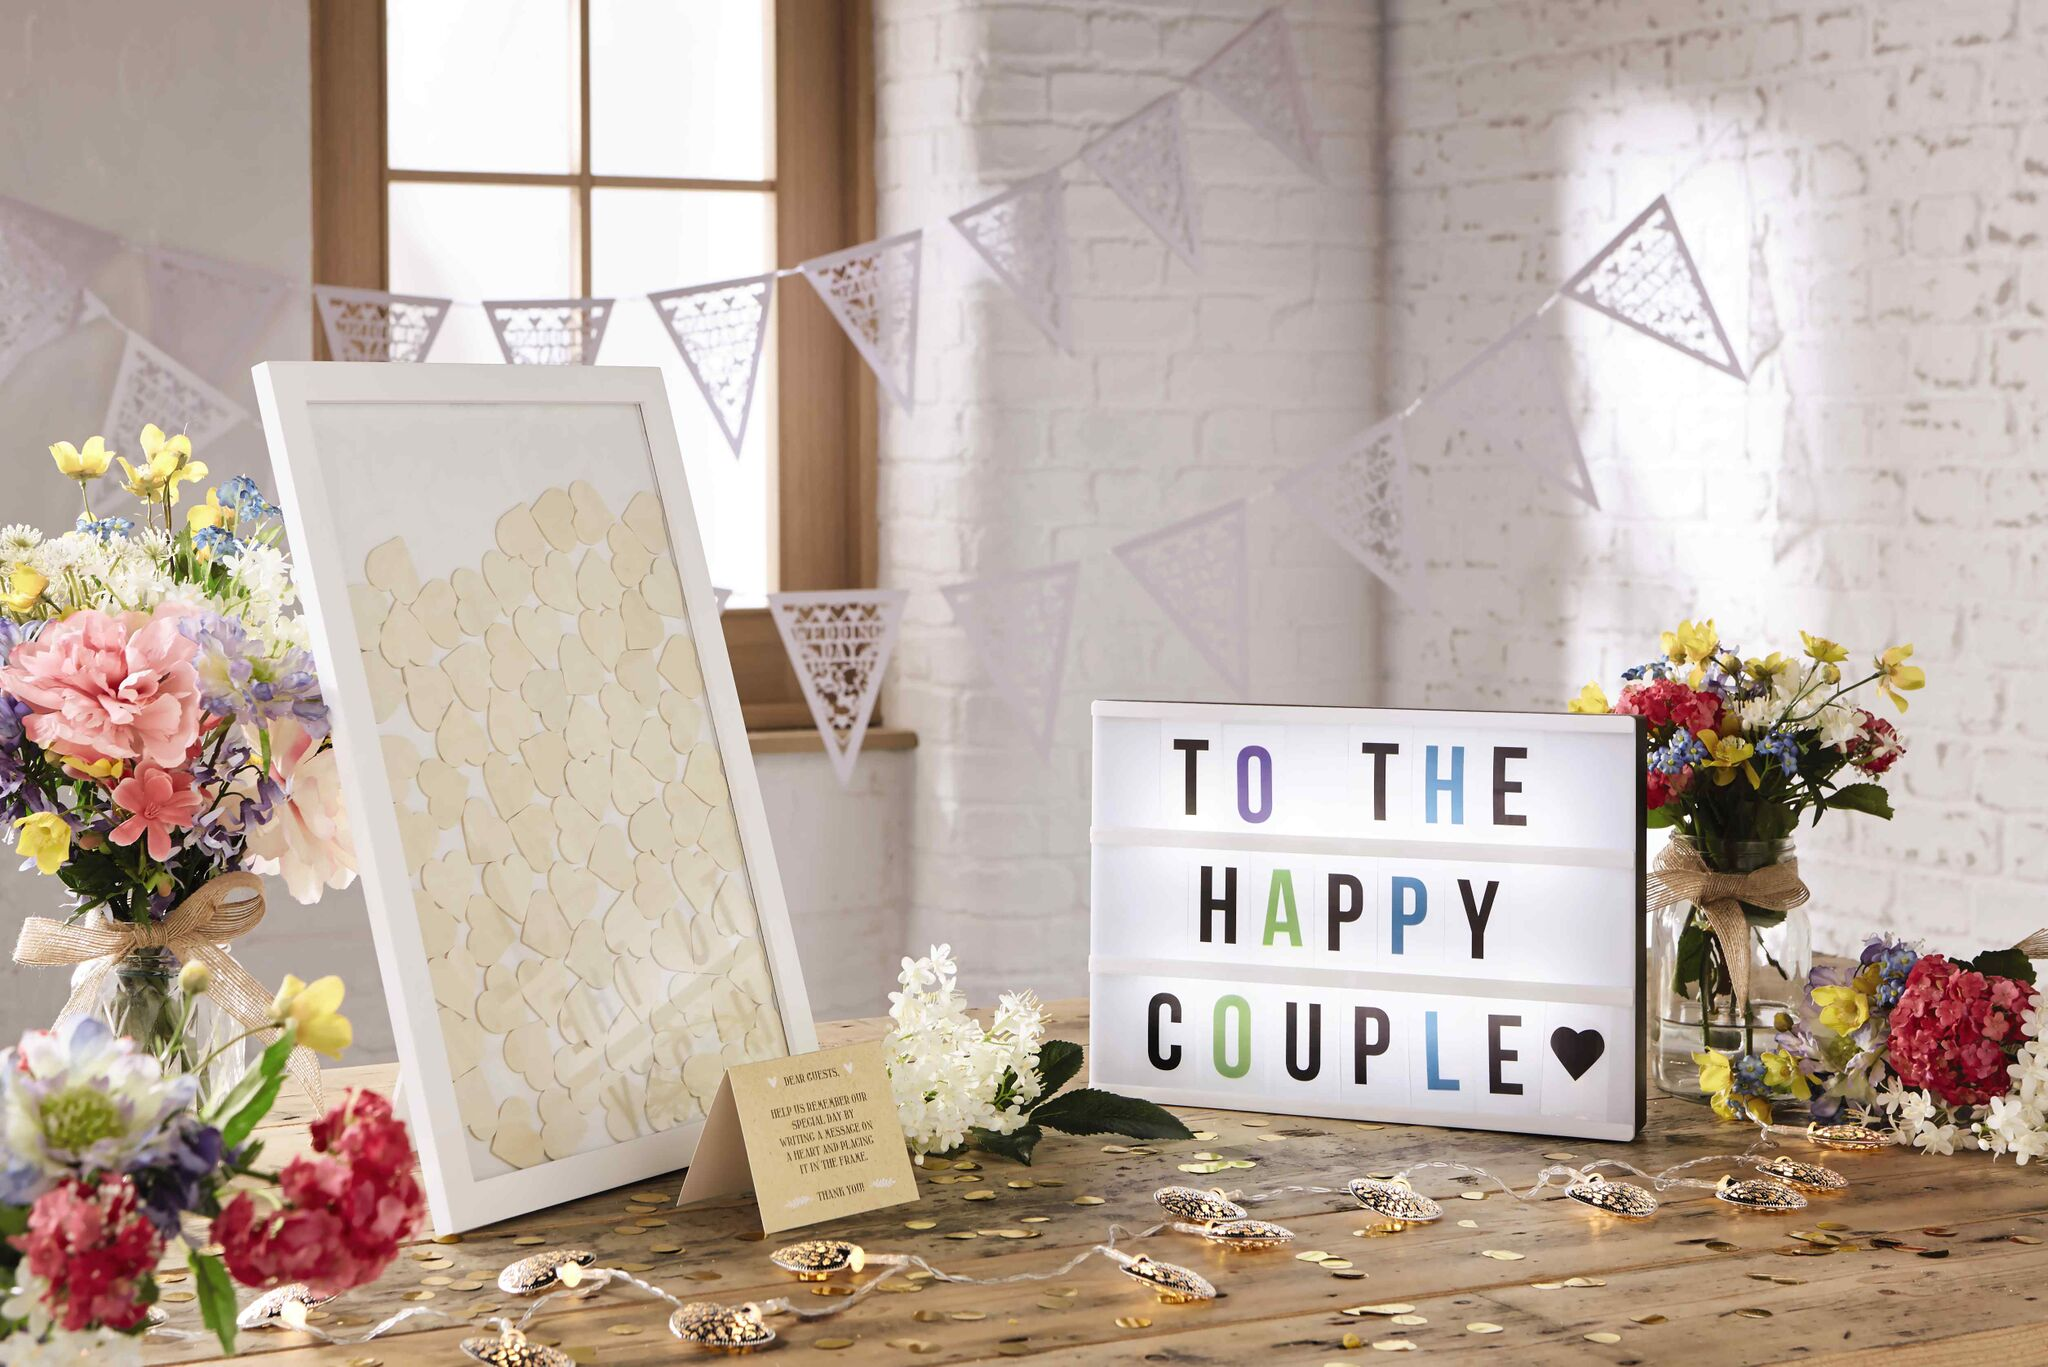 Aldi's new wedding range is perfect for doing your big day on a budget